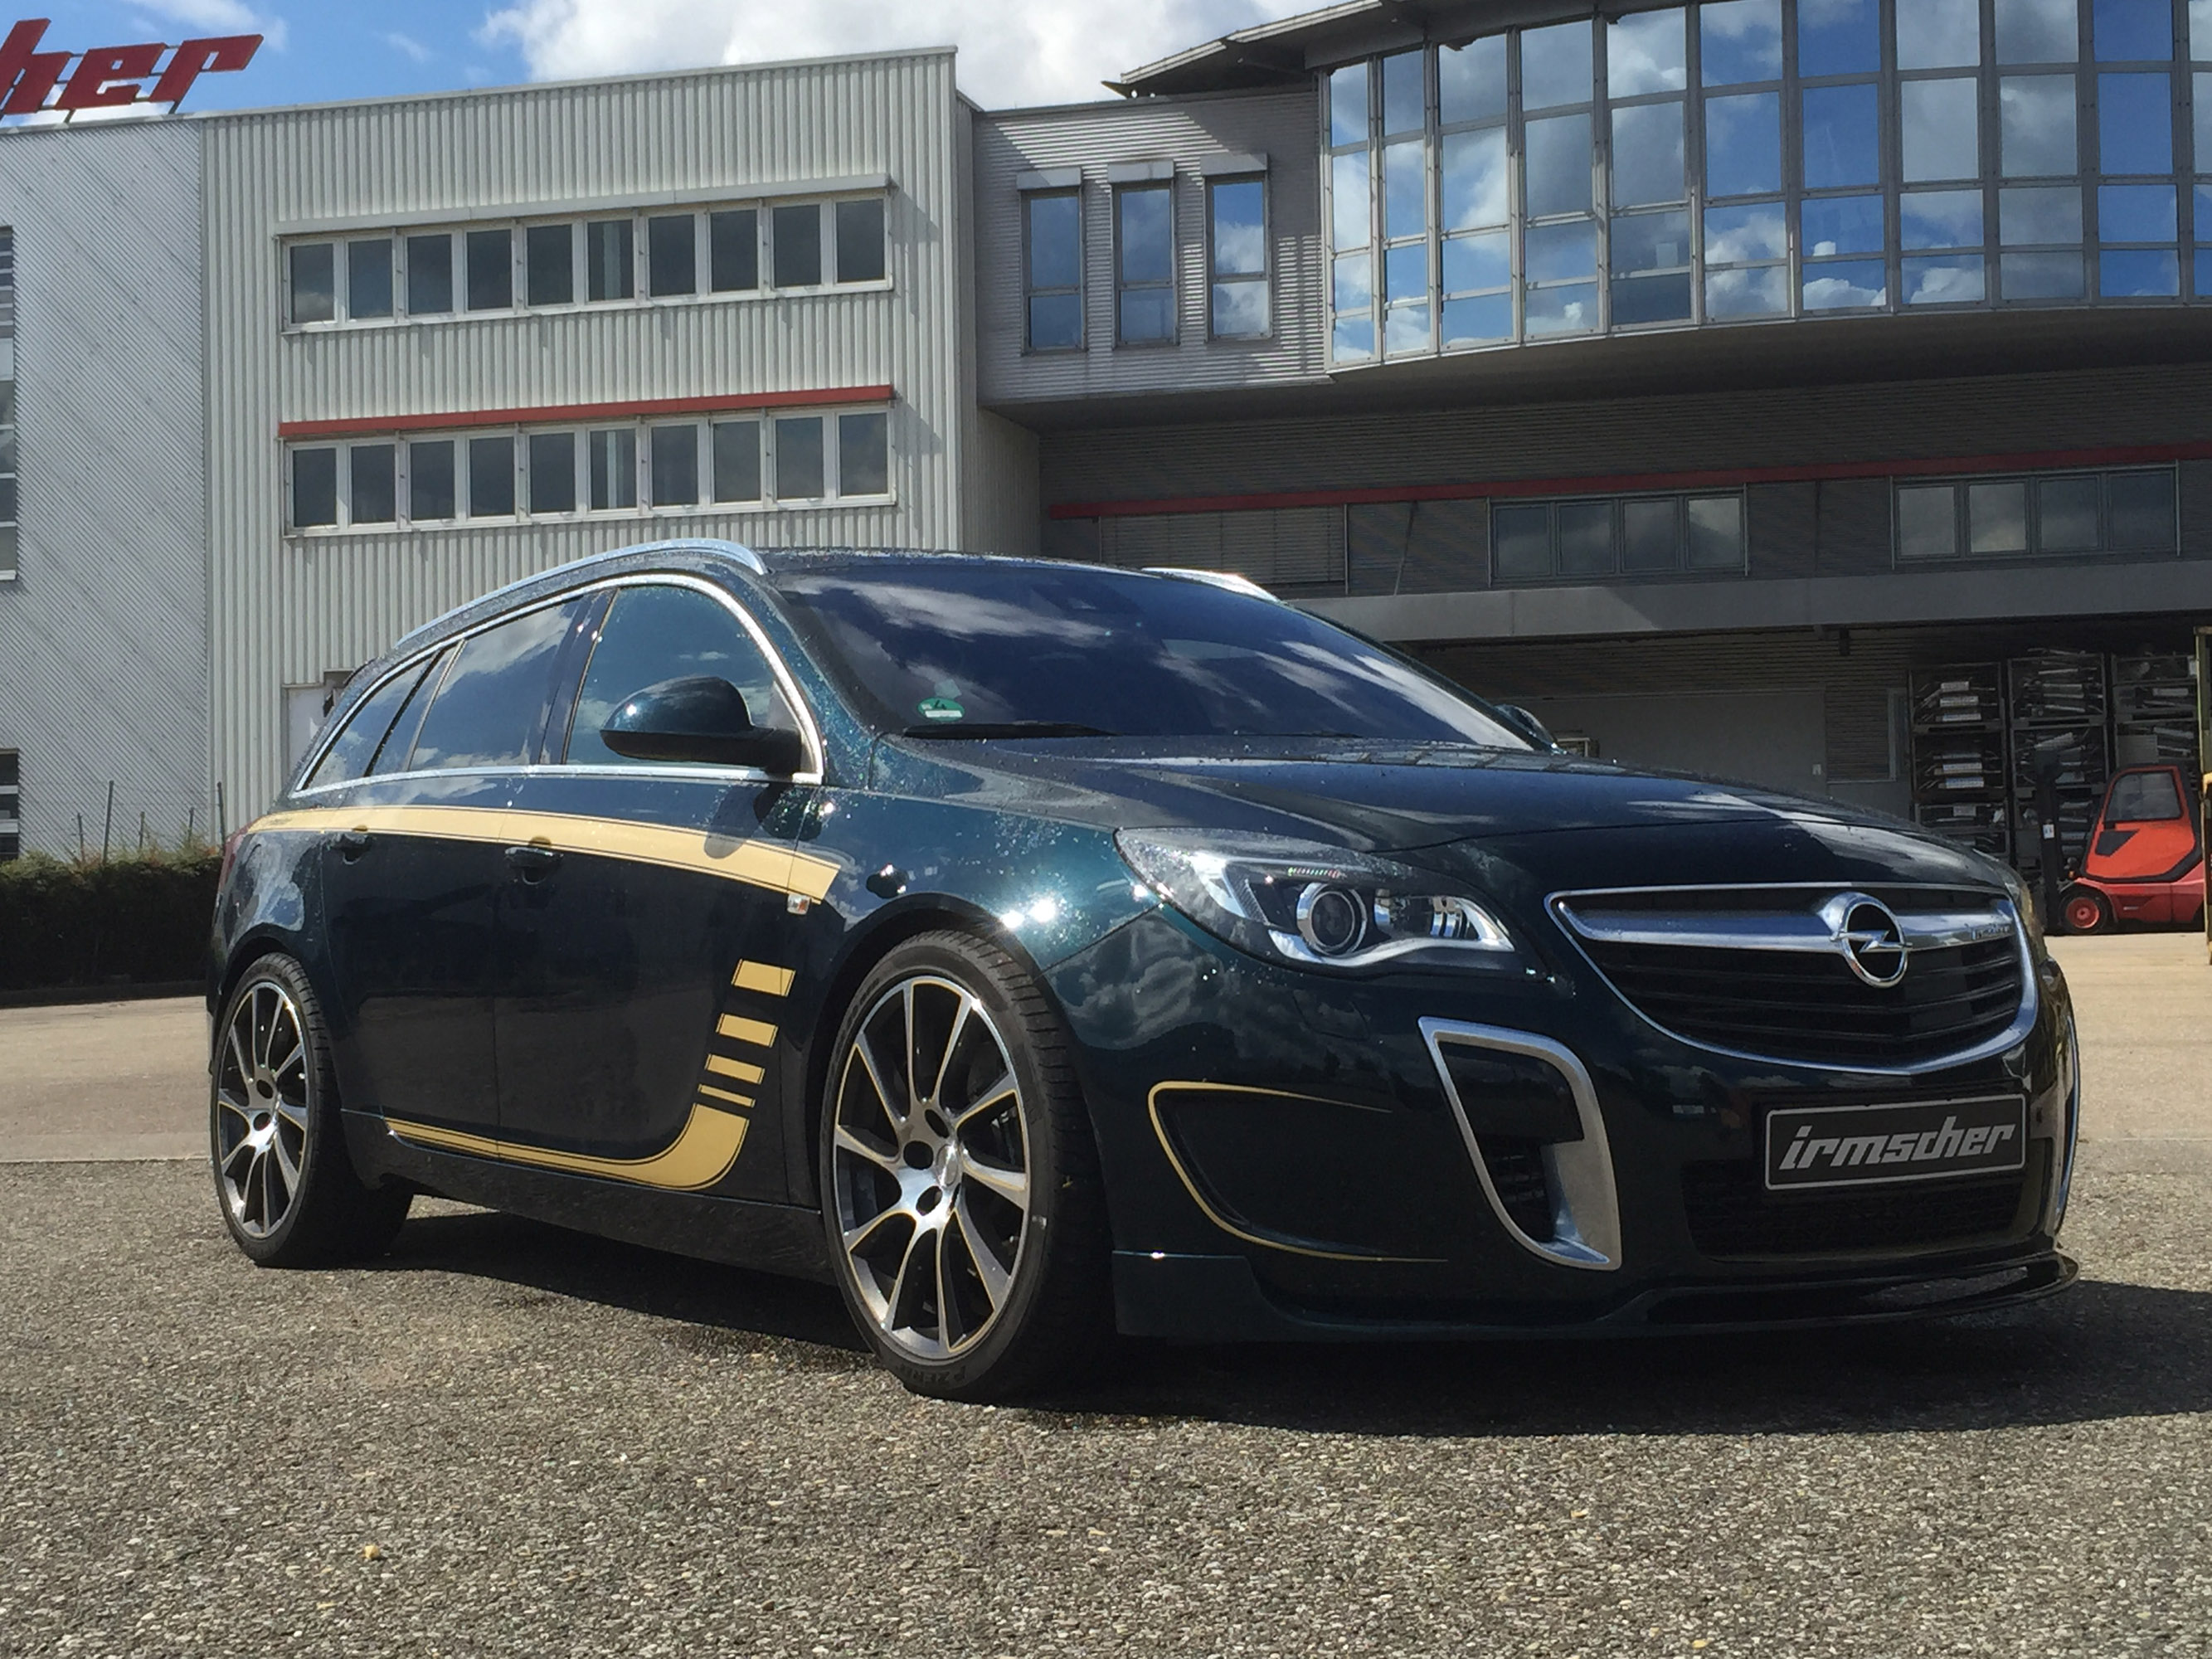 irmscher releases special edition opel insignia is3 called bandit. Black Bedroom Furniture Sets. Home Design Ideas